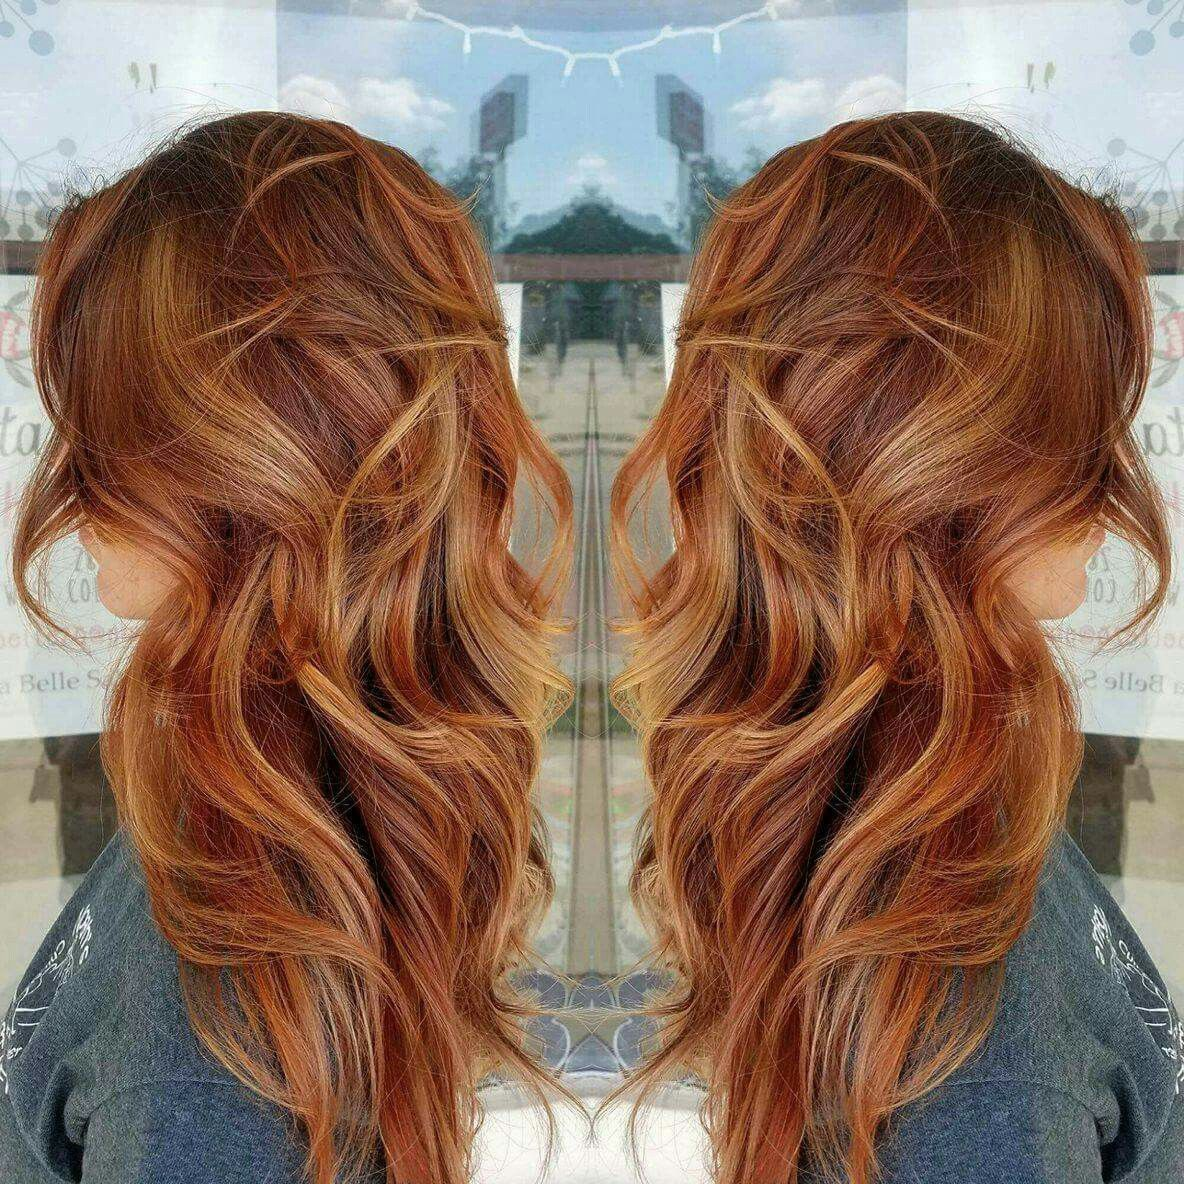 55 Fall Hair Color Ideas For Blonde, Brown and Auburn ...